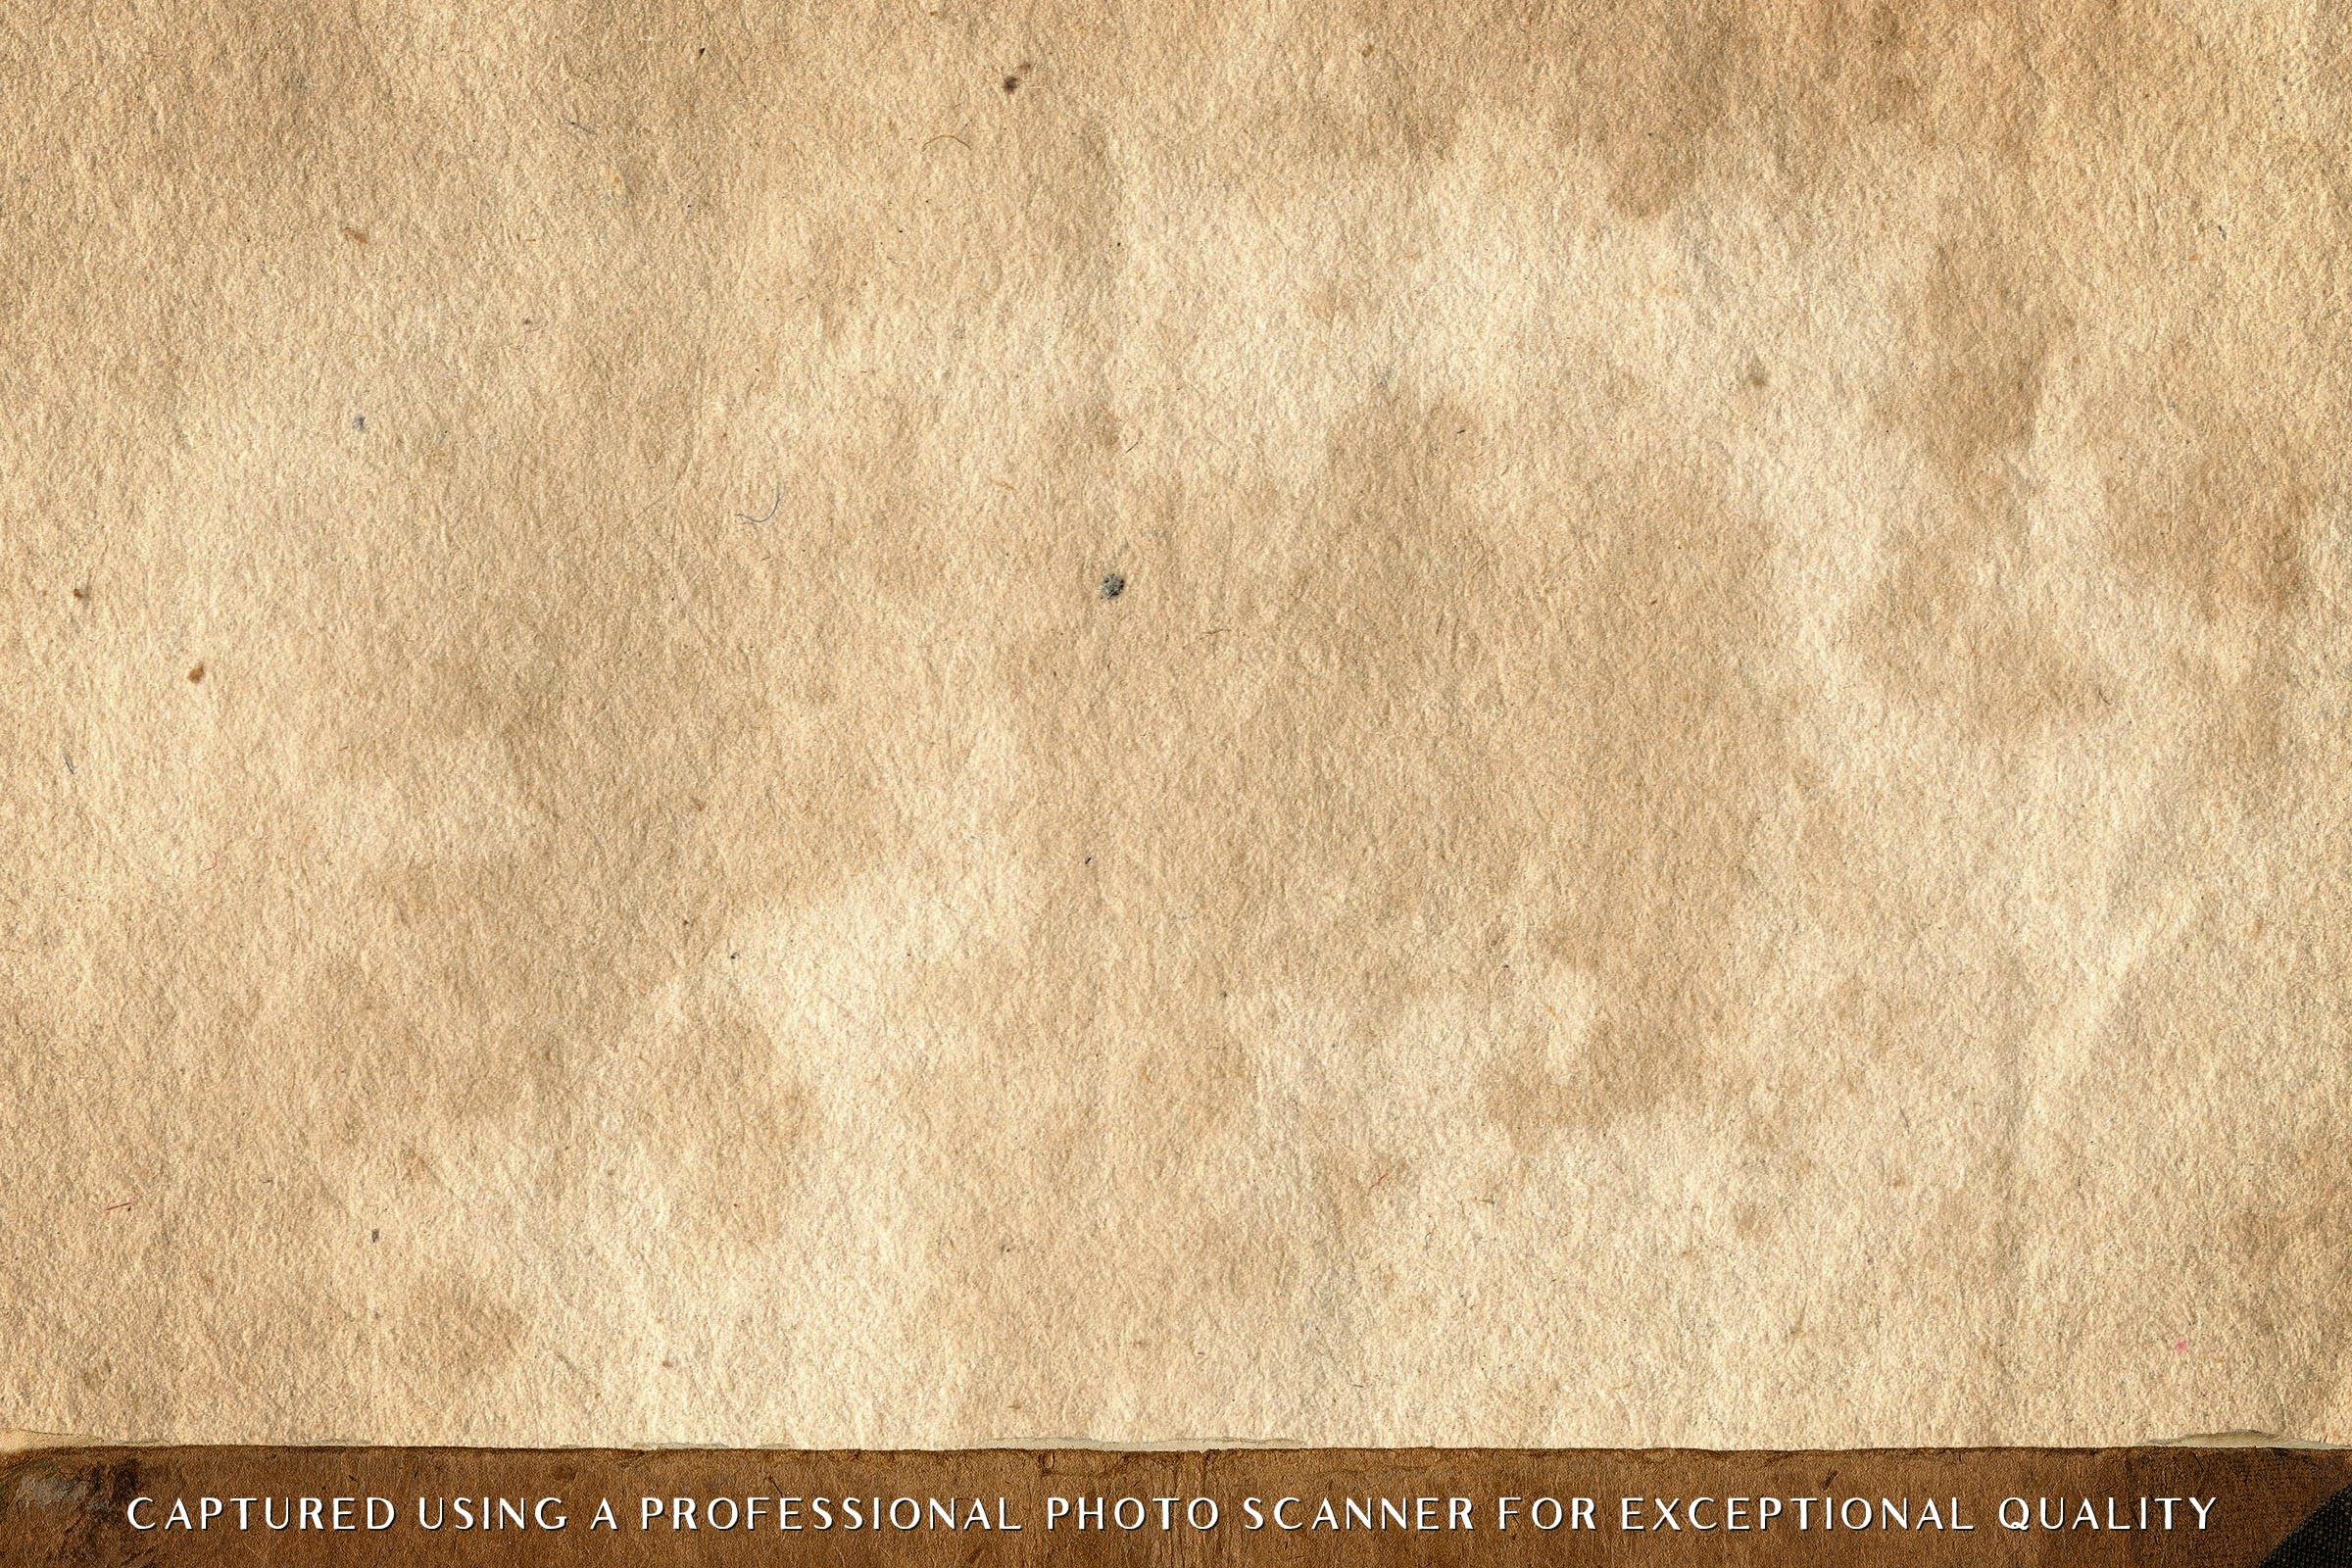 Vintage Book & Paper Texture Pack - Tom Chalky